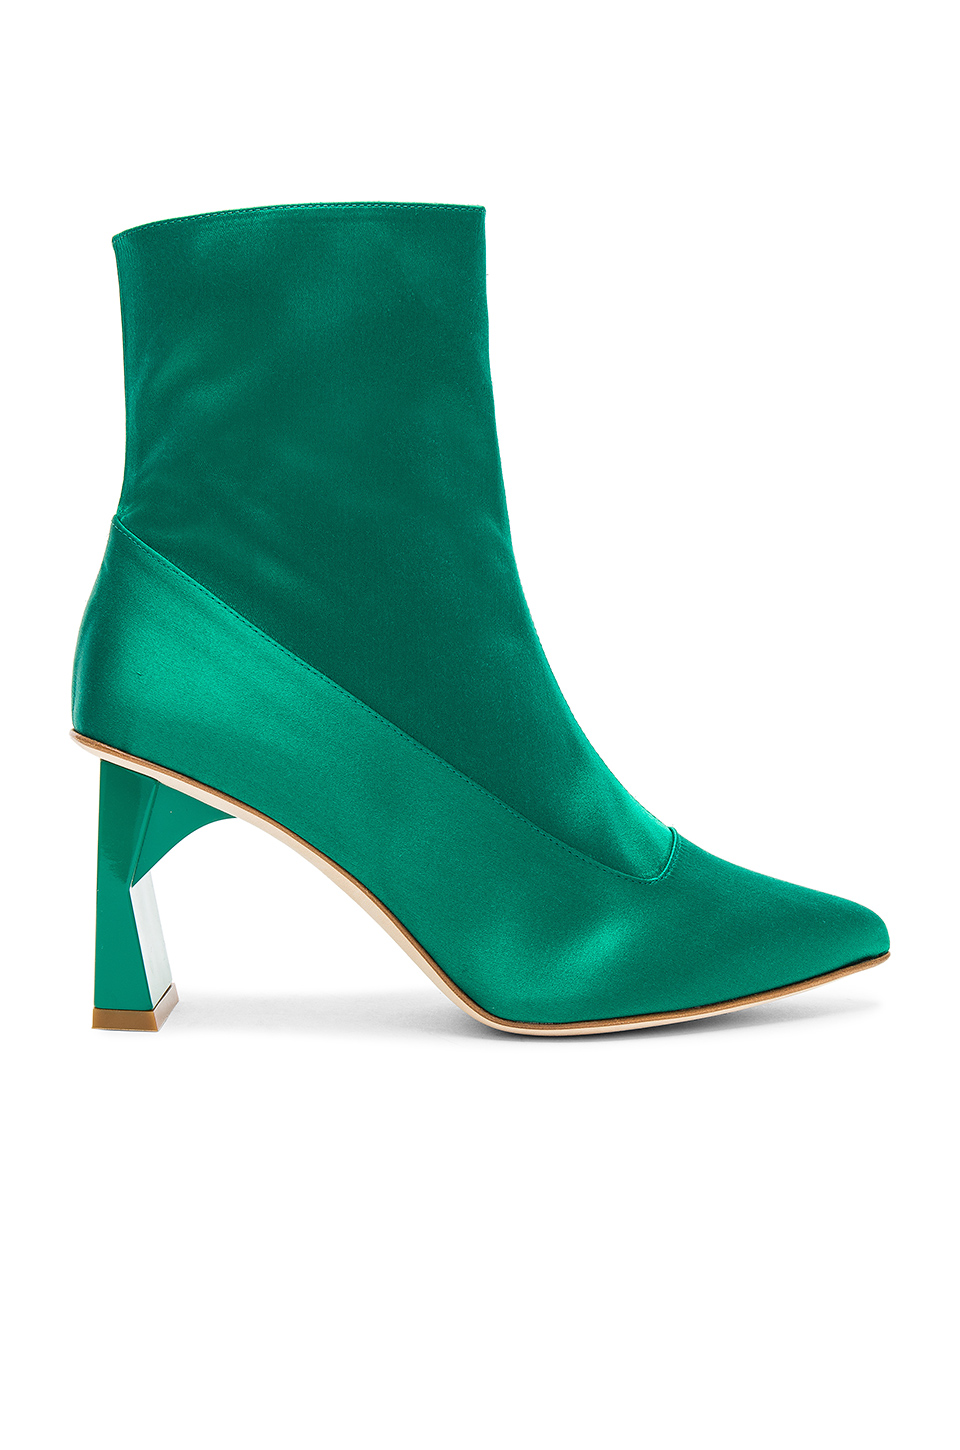 Tibi Alexis Bootie in Kelly Green